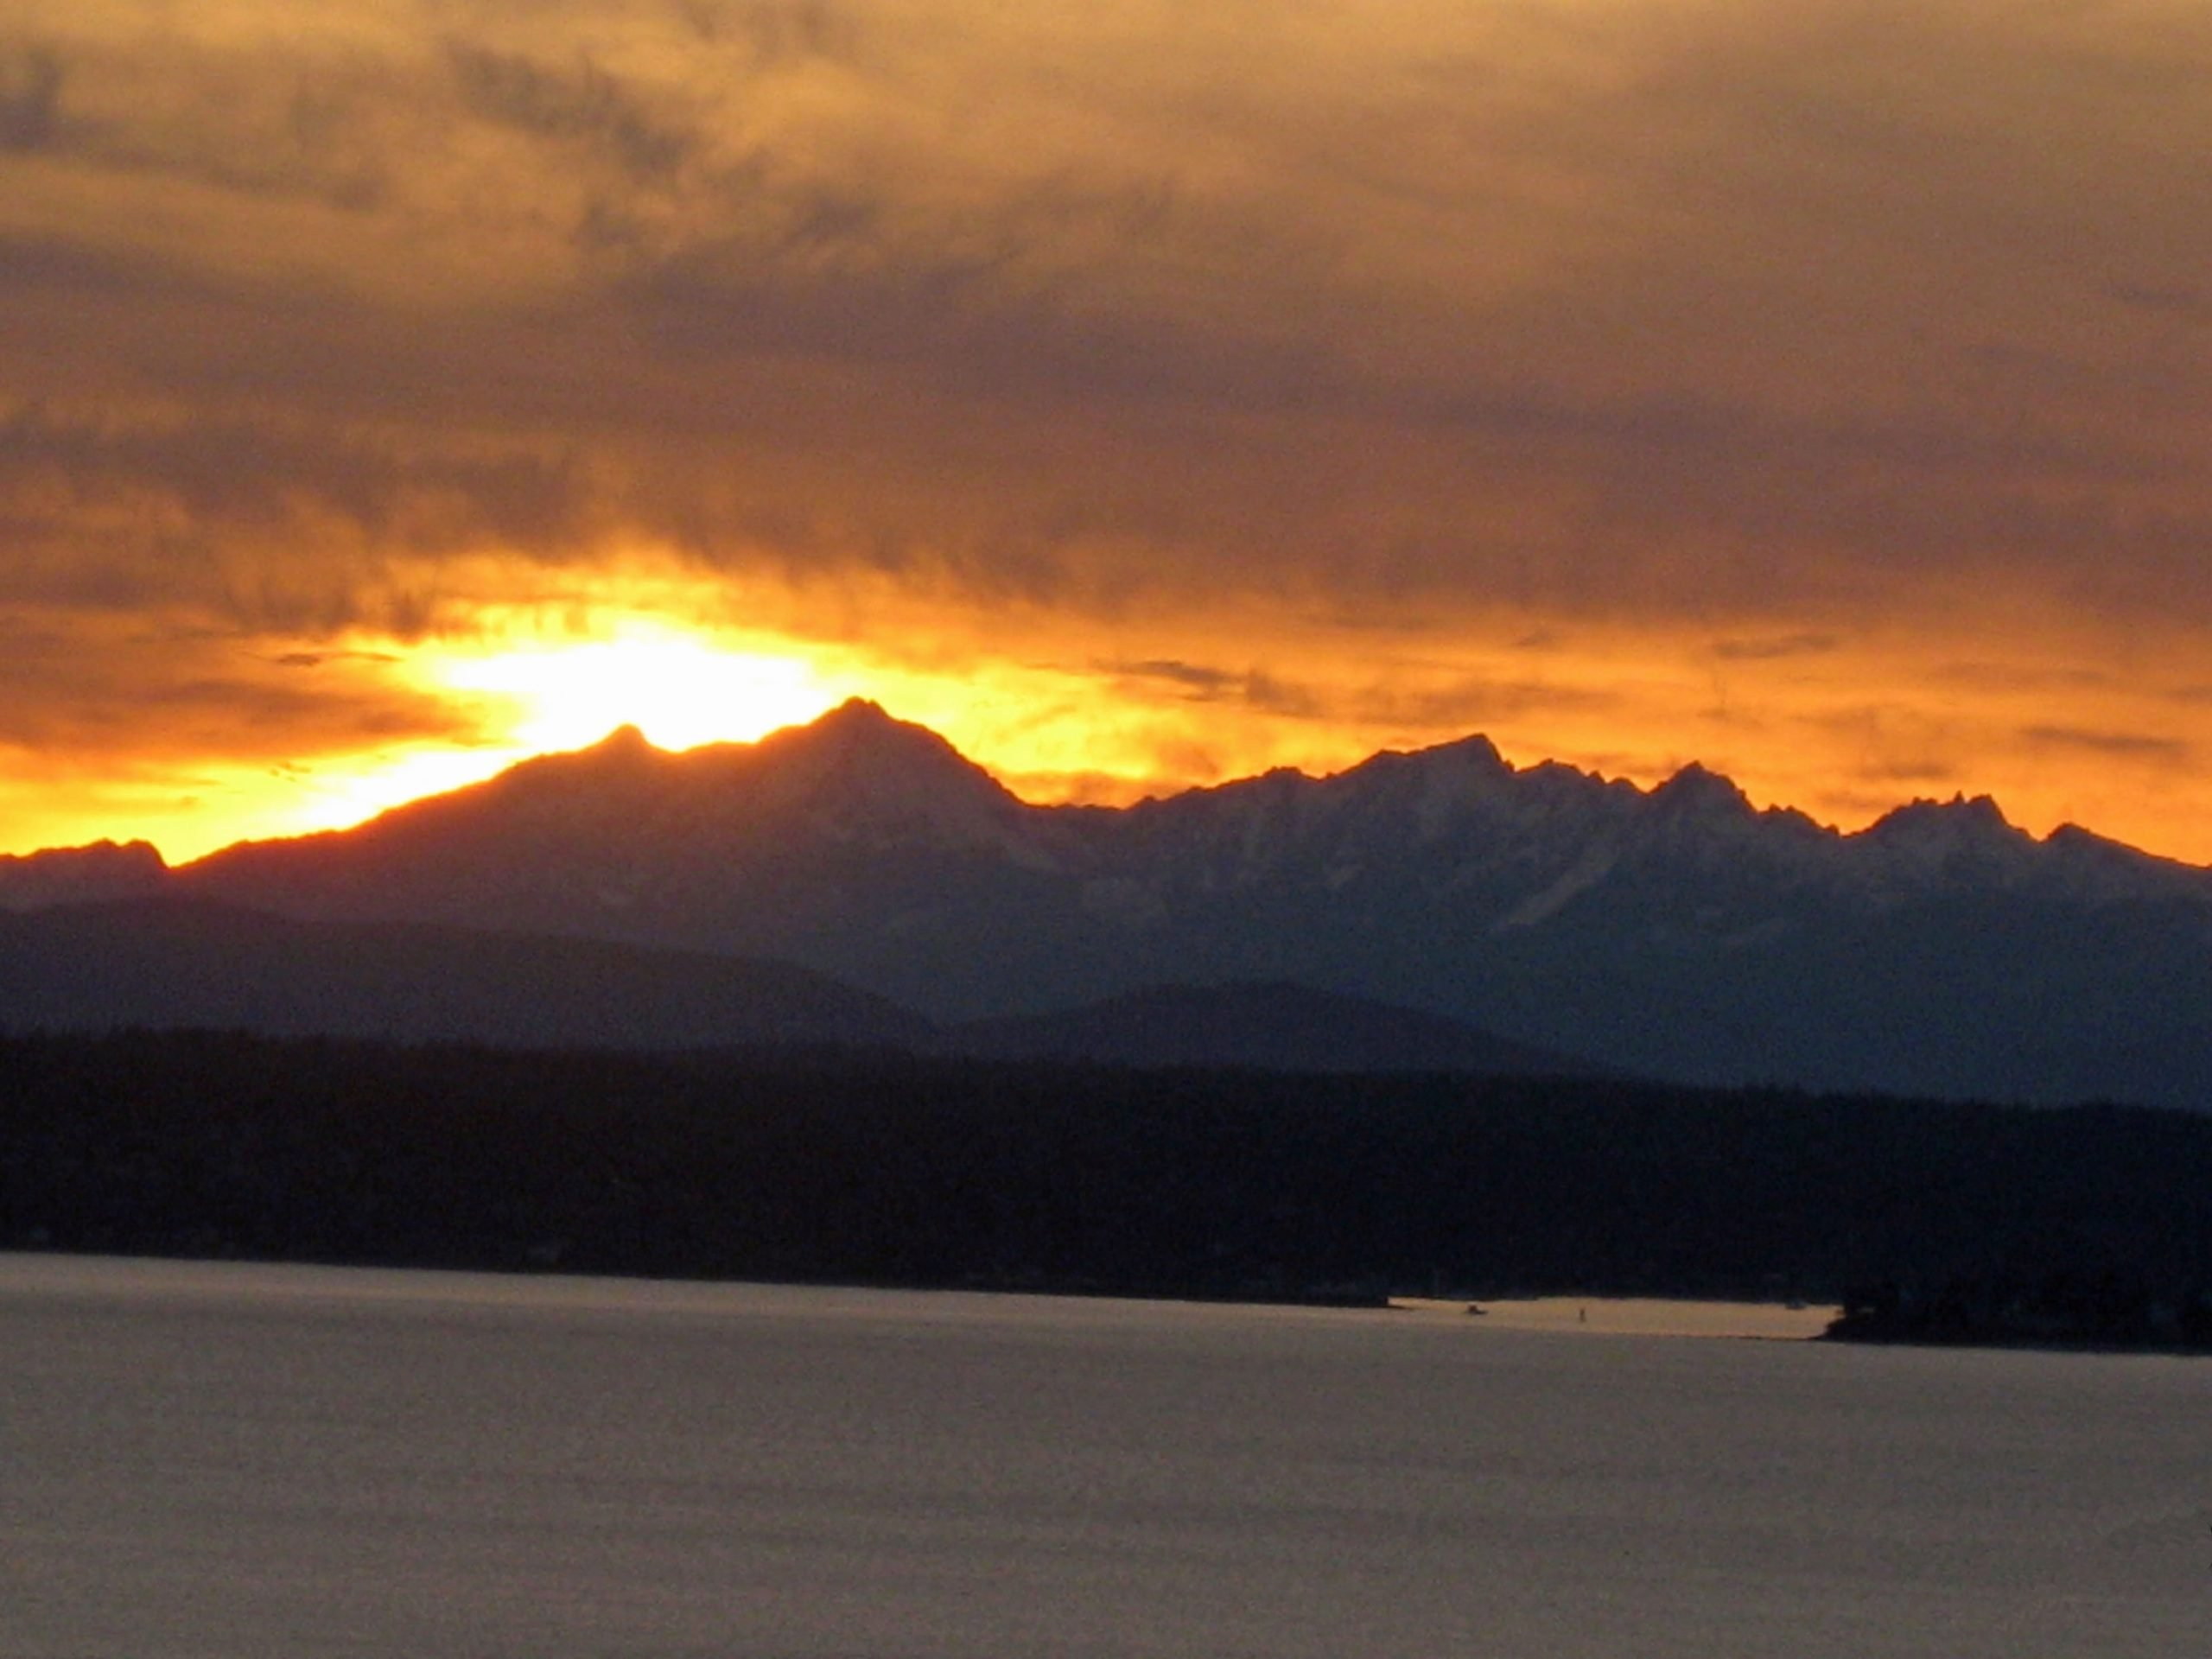 Seattle sunset, as winter dissolves into almost-spring. (March 4, 2013)